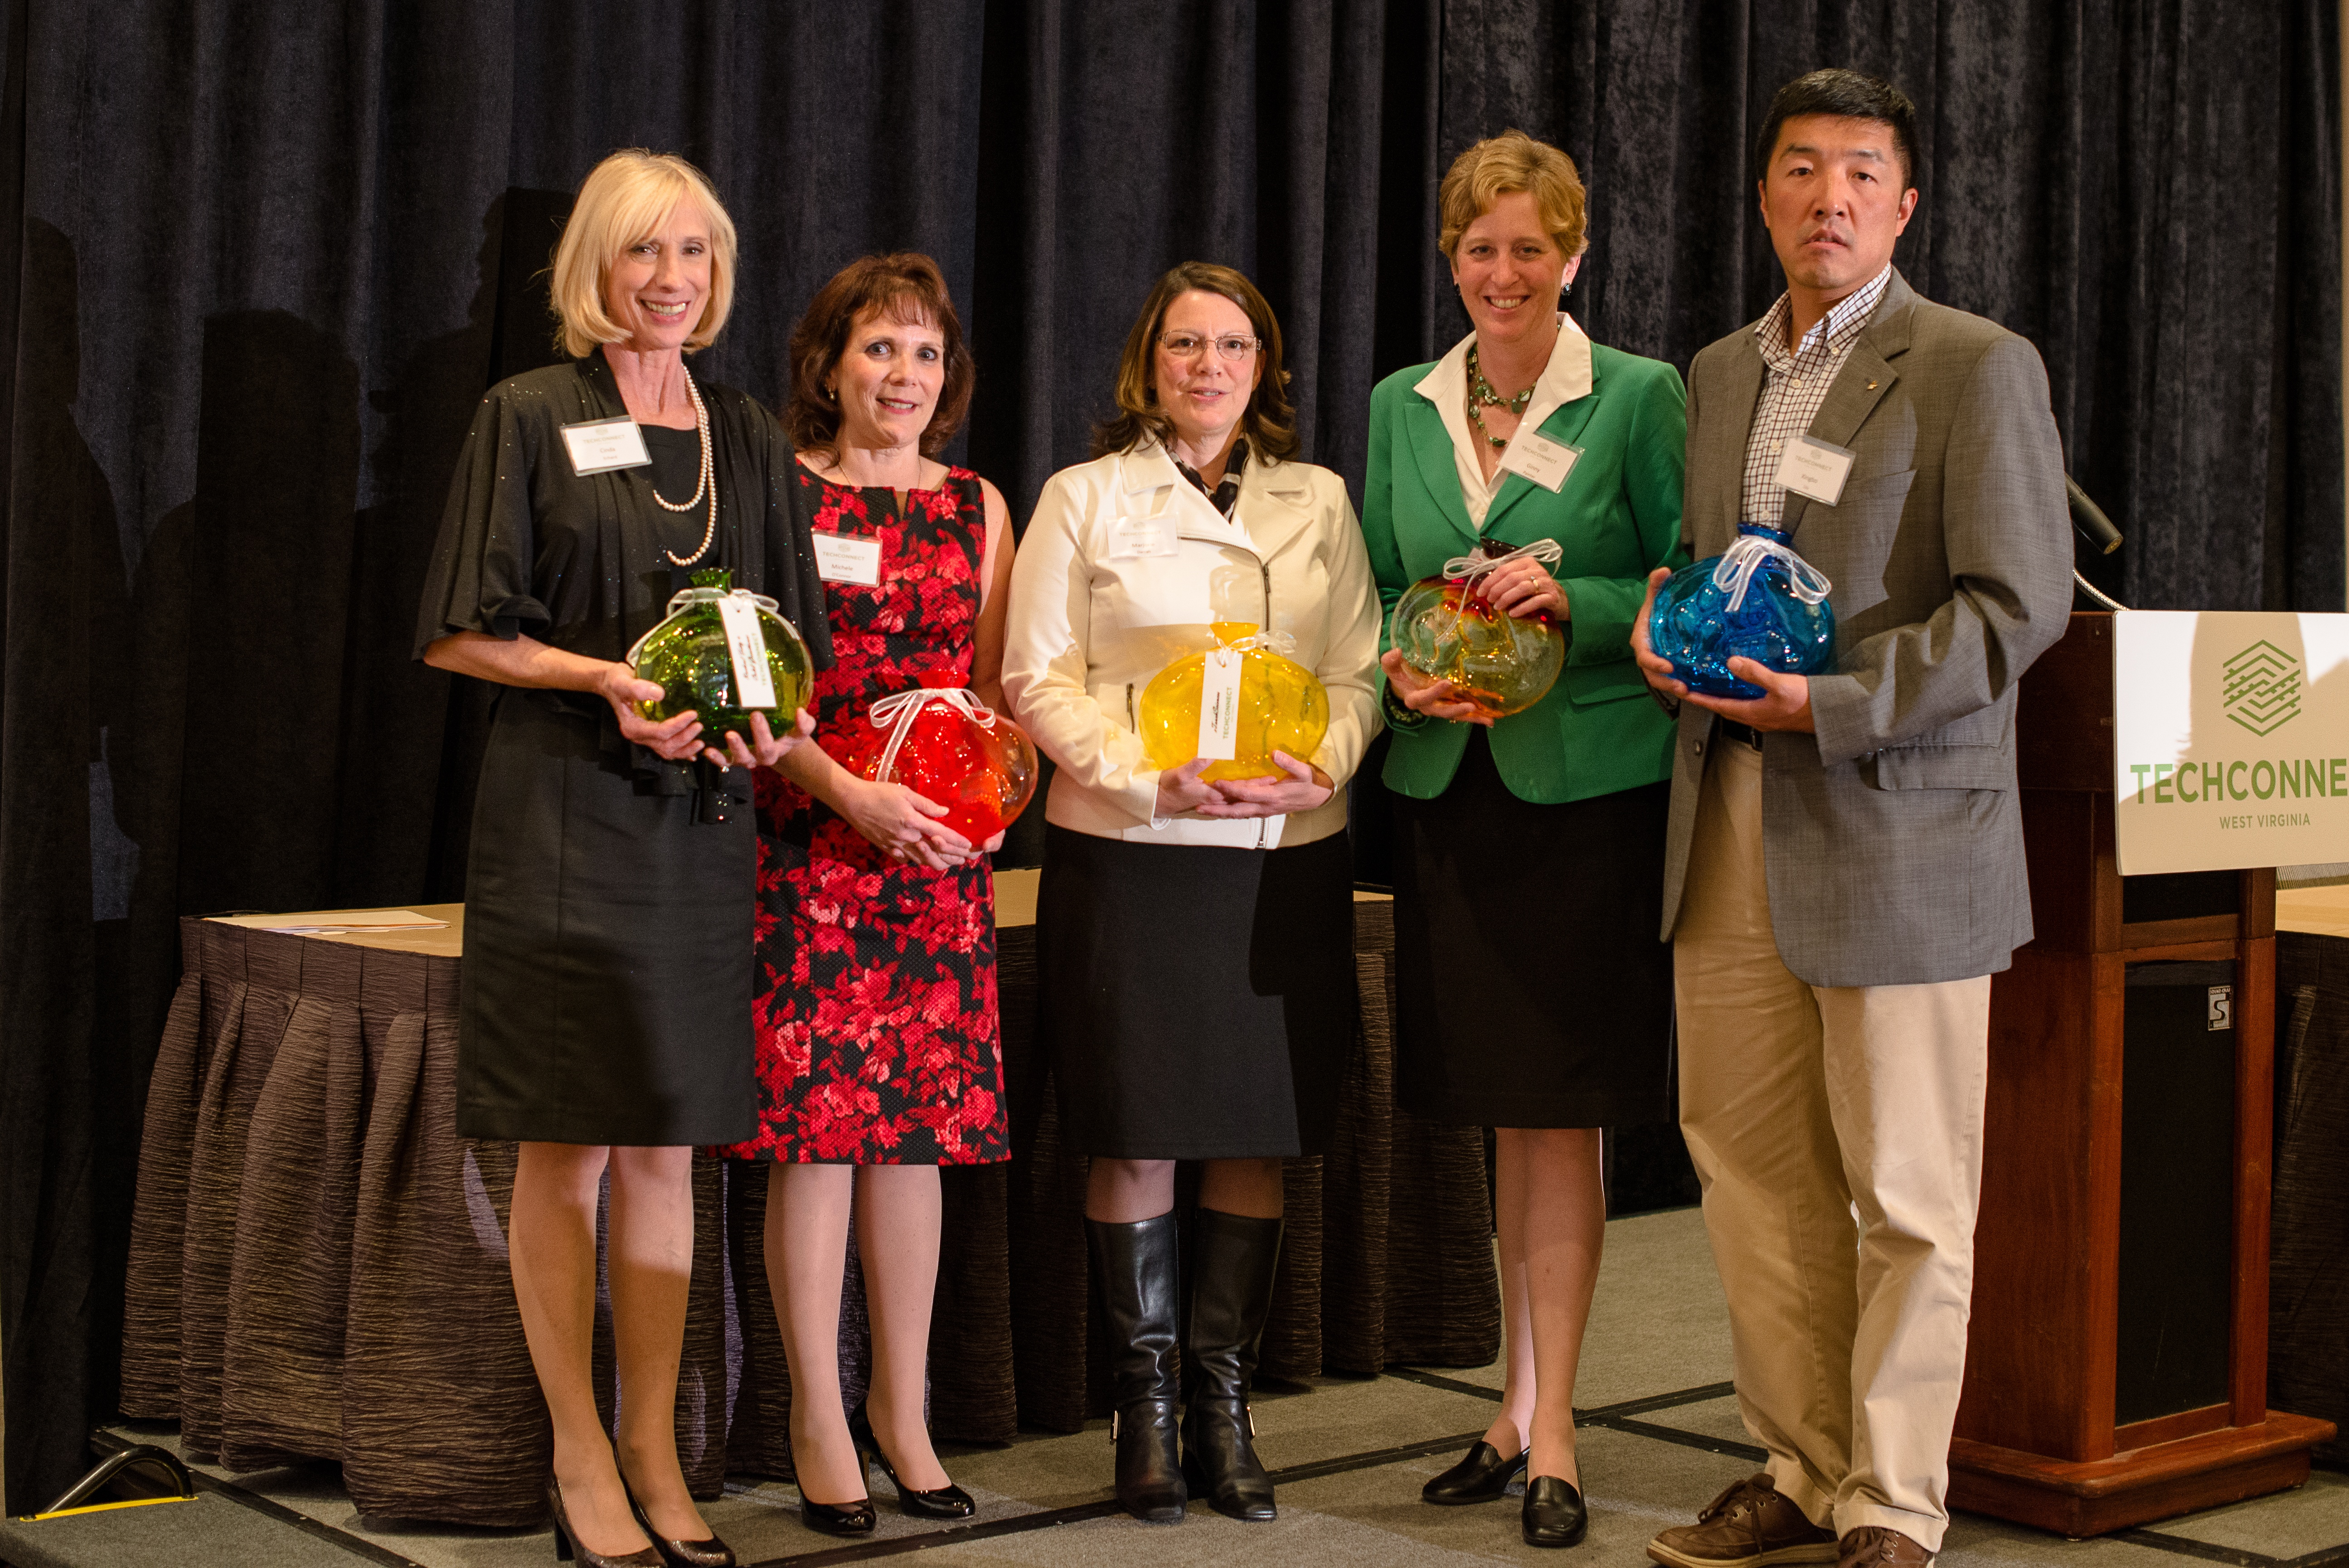 Cinda Echard of Glenville State College, representing the Student Innovators of the Year; Michele O'Conner, WVJIT, representing the  Investor Recognition Award; Dr. Marjorie Darrah, eTouchSciences, representing the StartUp Innovation of the Year; Ginny Painter, TechConnect Board Member, representing Dr. Stephanie Skolik, winner of the Outstanding Woman in Technology Award; and, Dr. Xingbo Liu, 2013 Innovator of the Year.